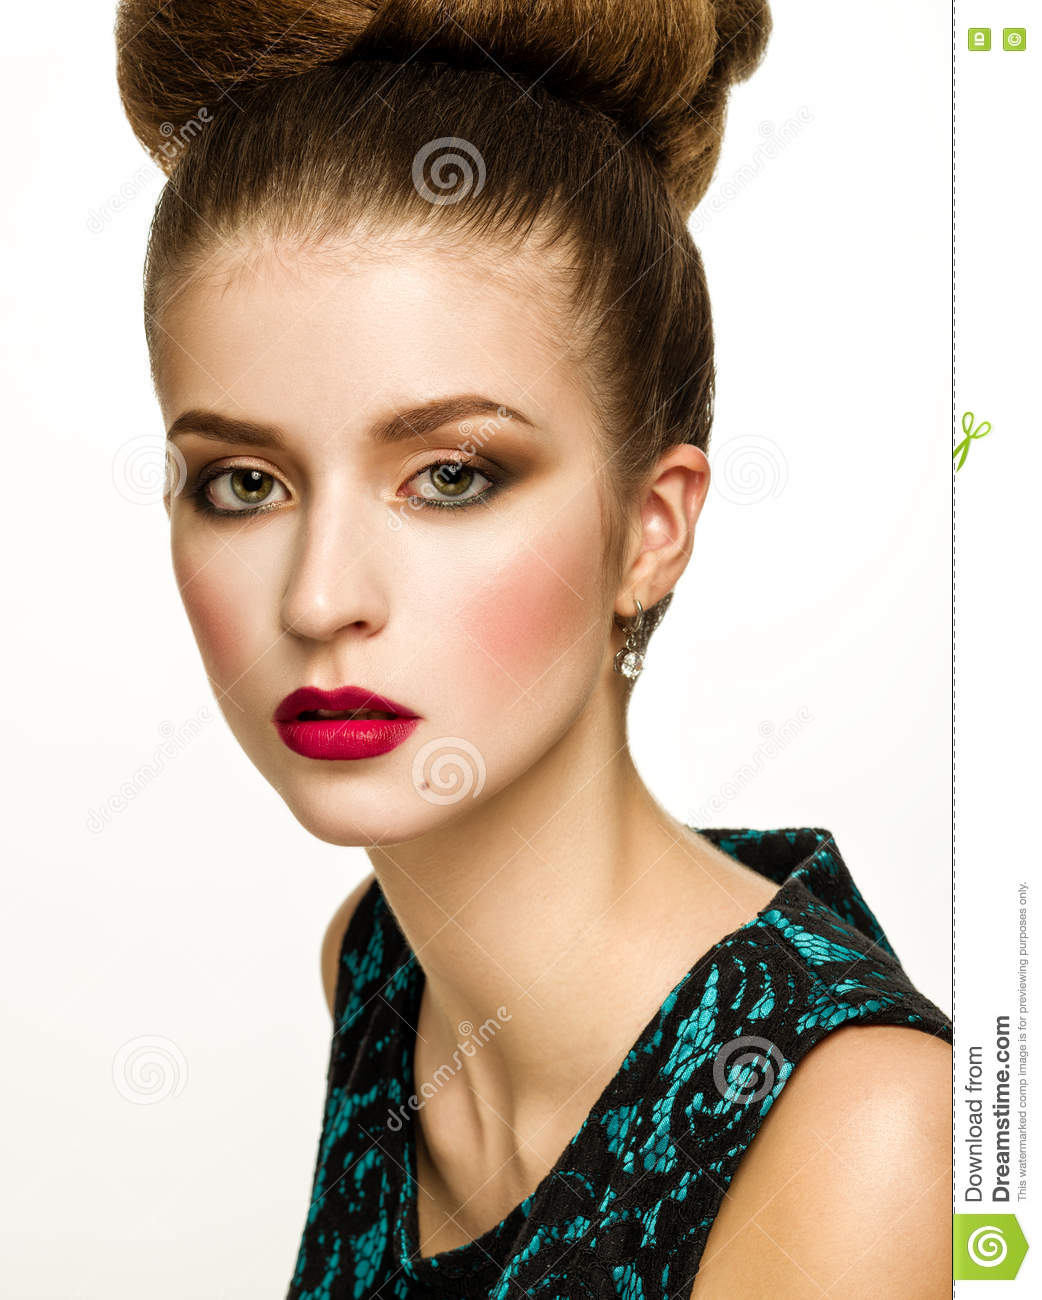 Beautiful Model Girl With Updo Hairstyle And Stylish Makeup Stock